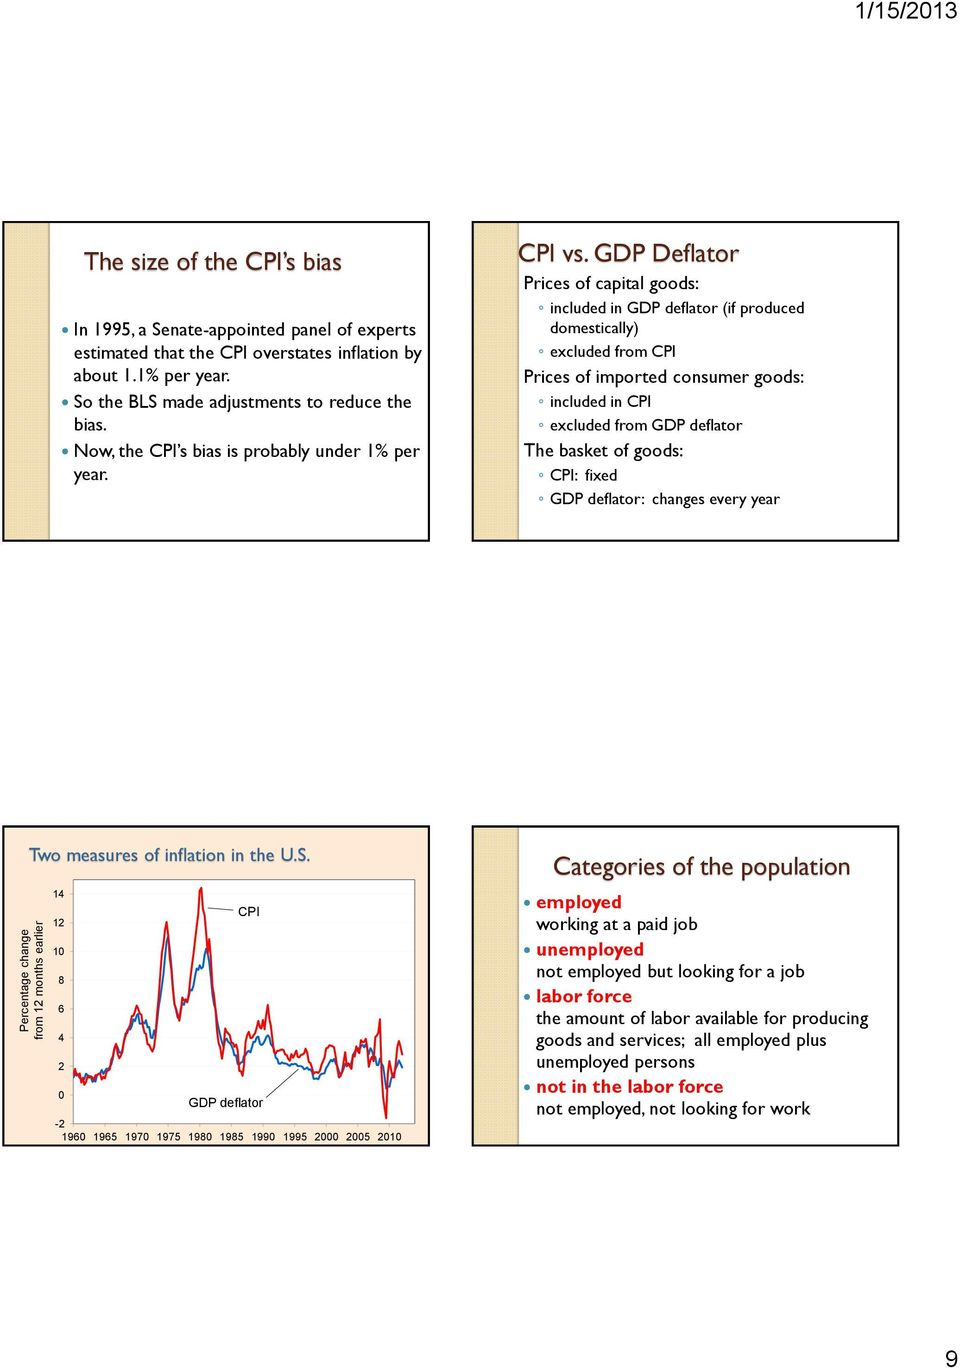 GDP Deflator Prices of capital goods: included in GDP deflator (if produced domestically) excluded from CPI Prices of imported consumer goods: included in CPI excluded from GDP deflator The basket of